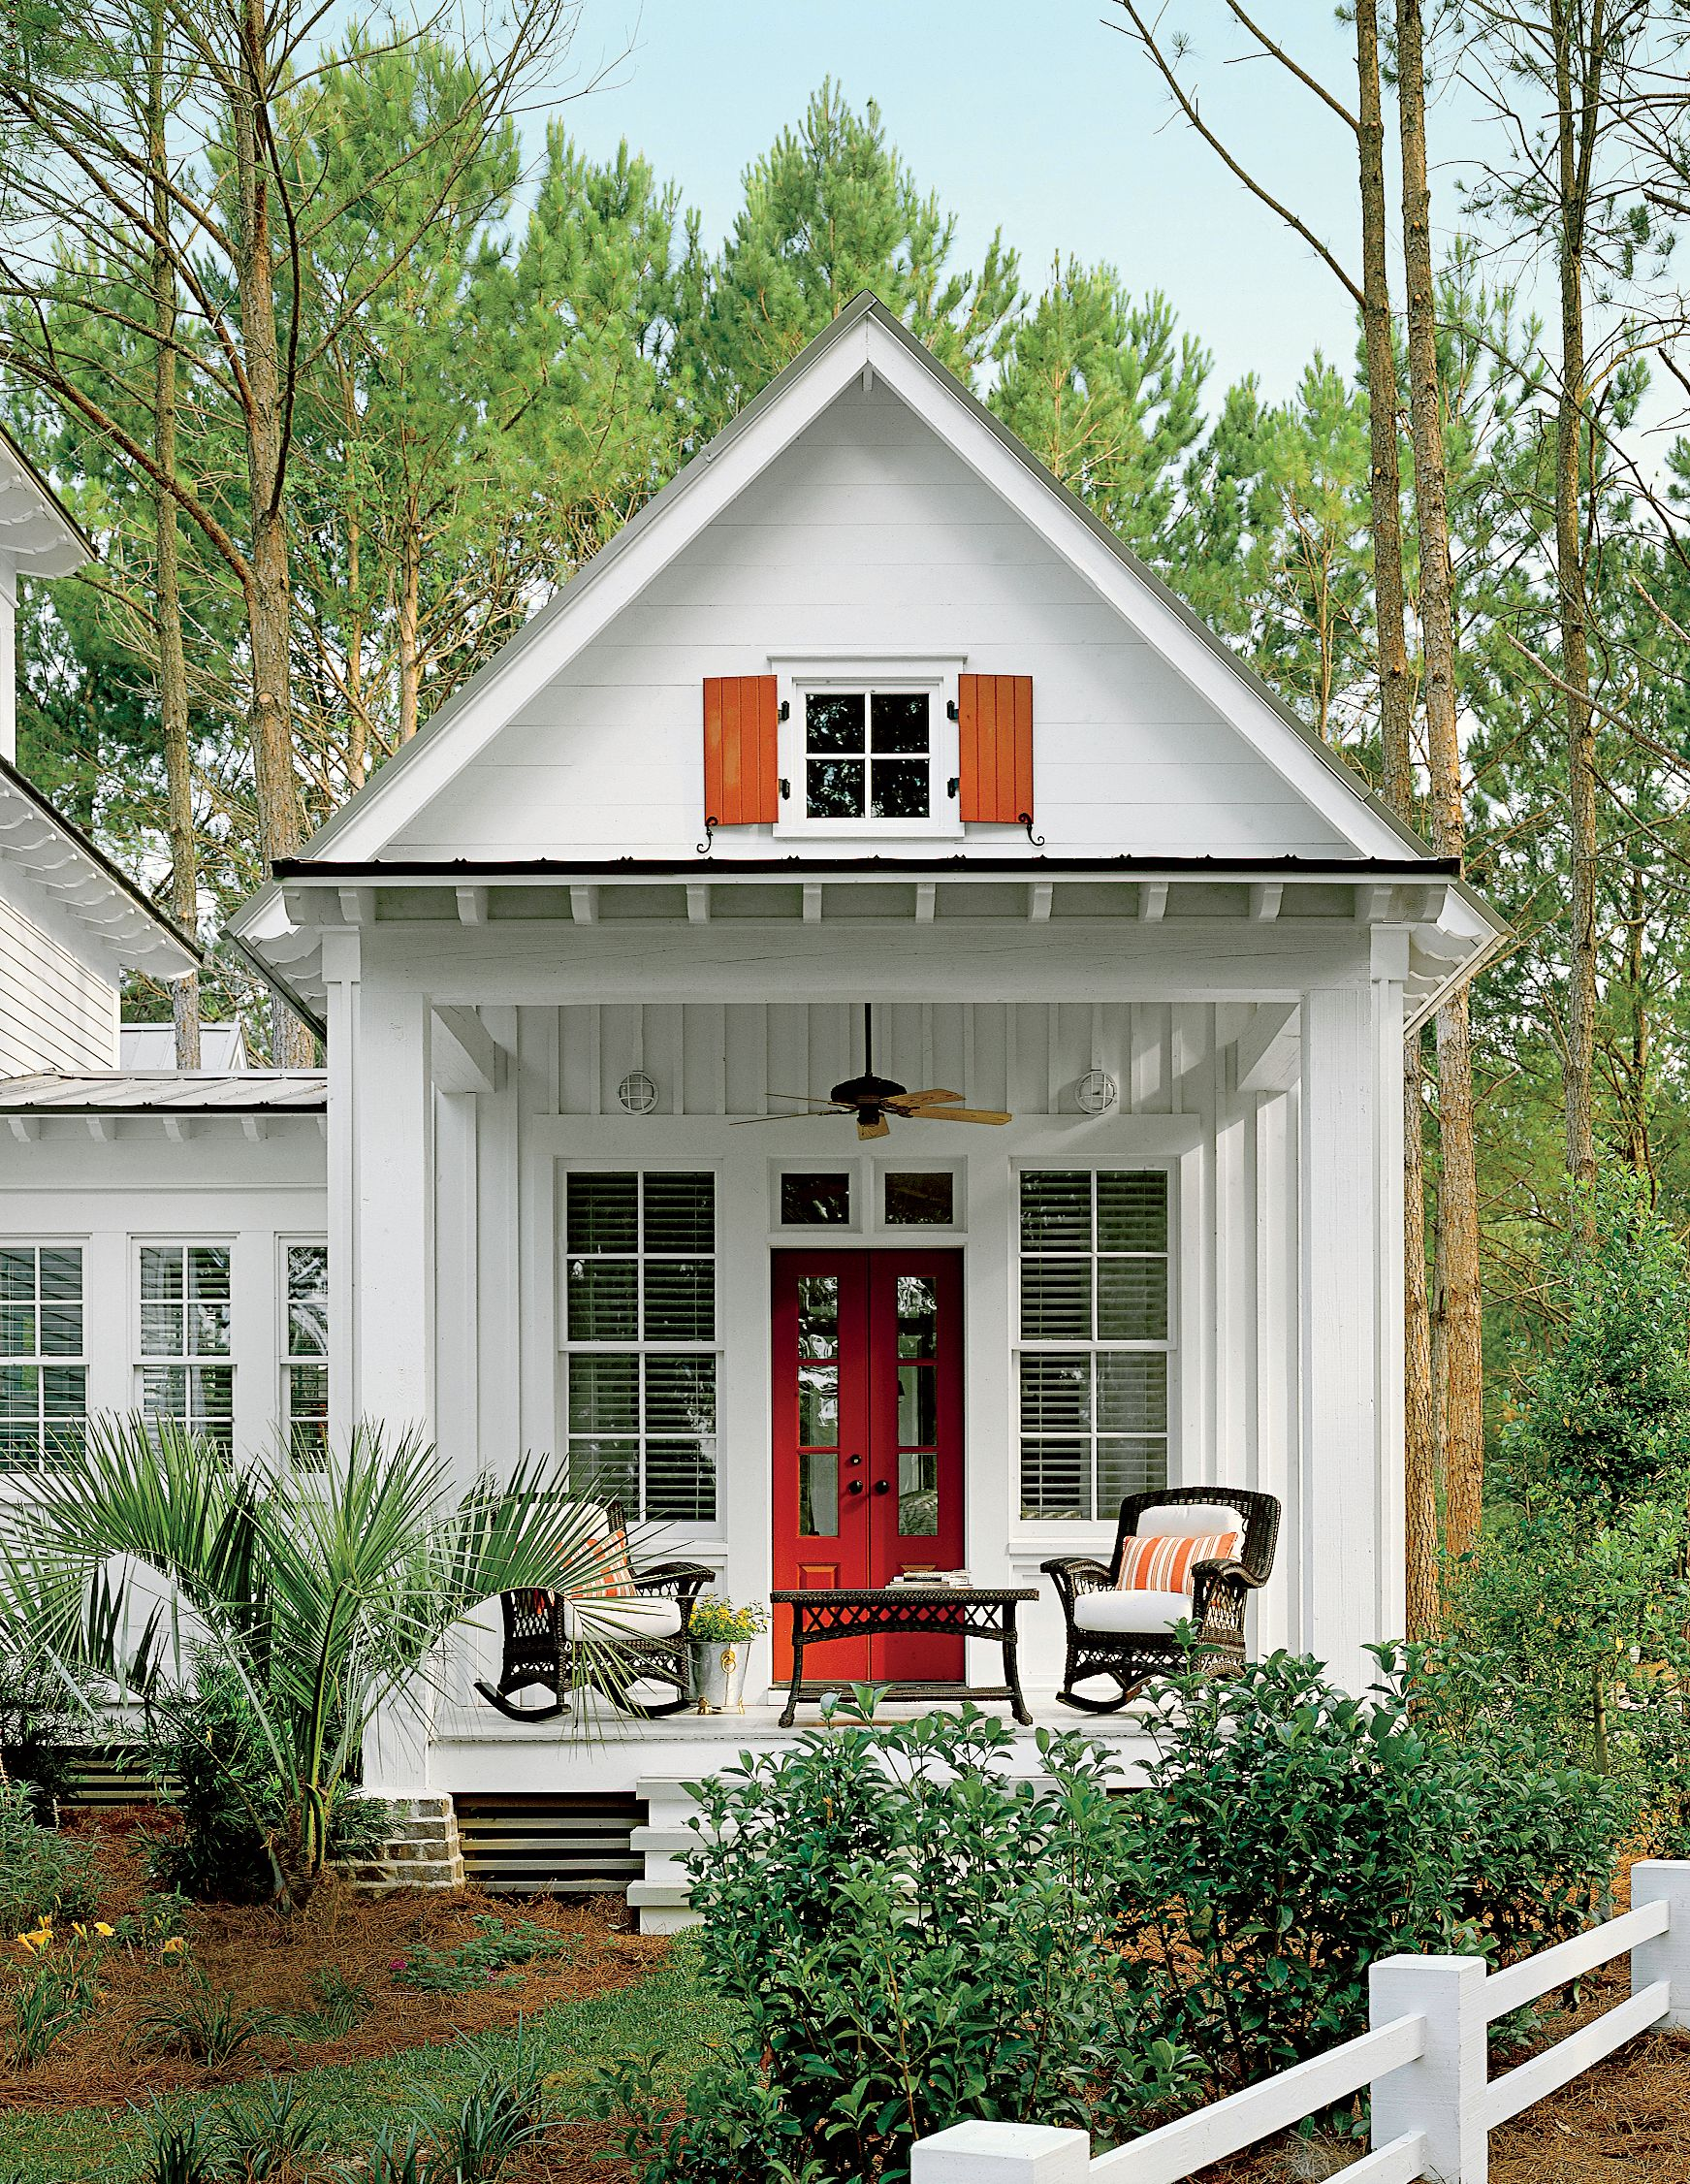 2016 BestSelling House Plans Southern living house